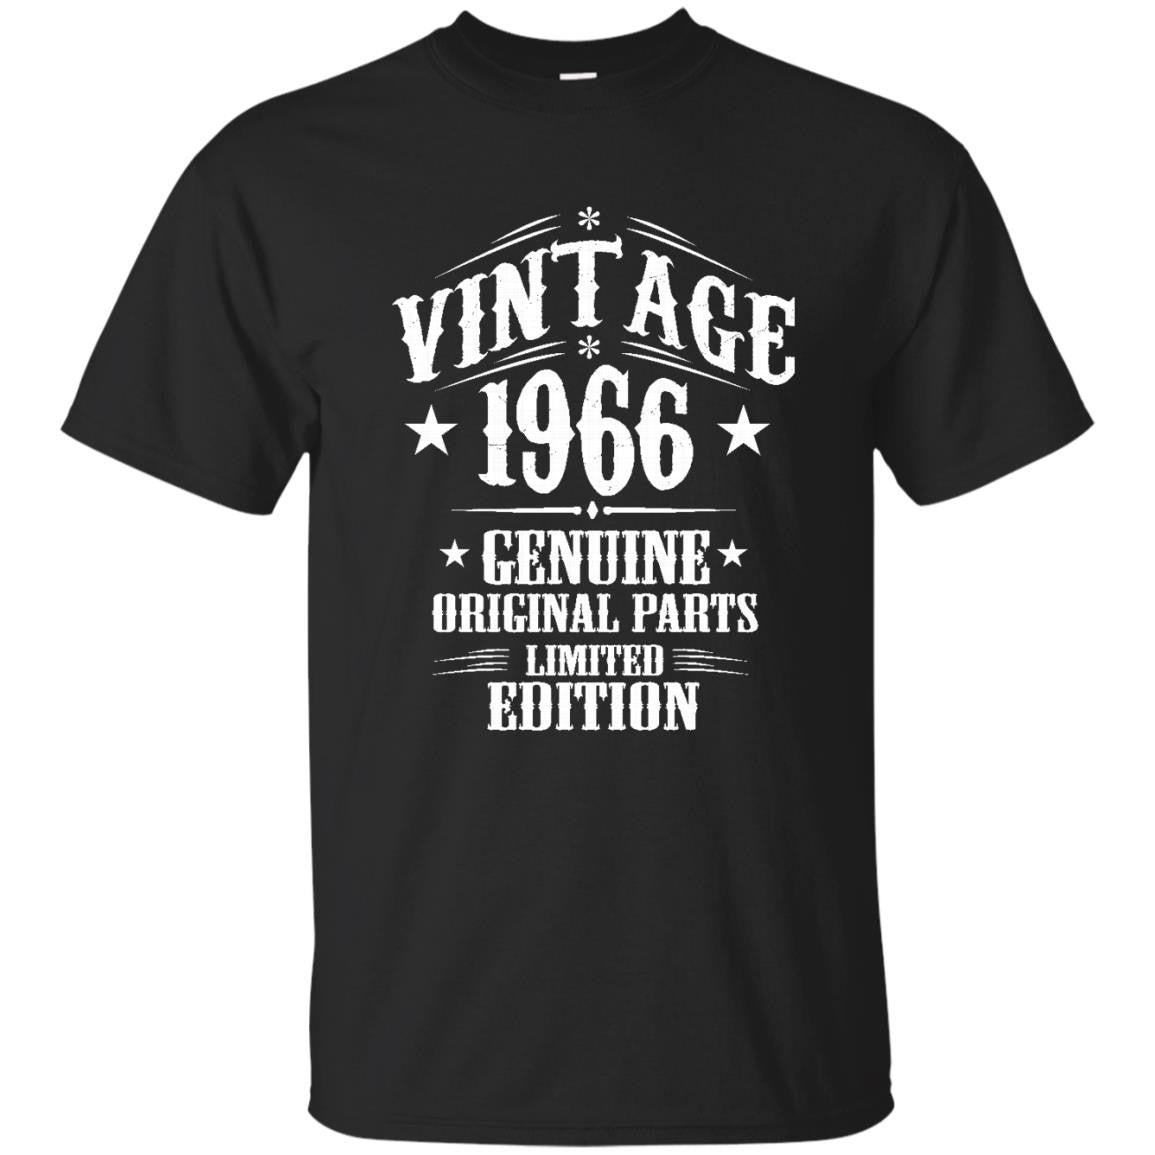 1966 Shirts Vintage Genuine Limited Edition T-shirts Hoodies Sweatshirts